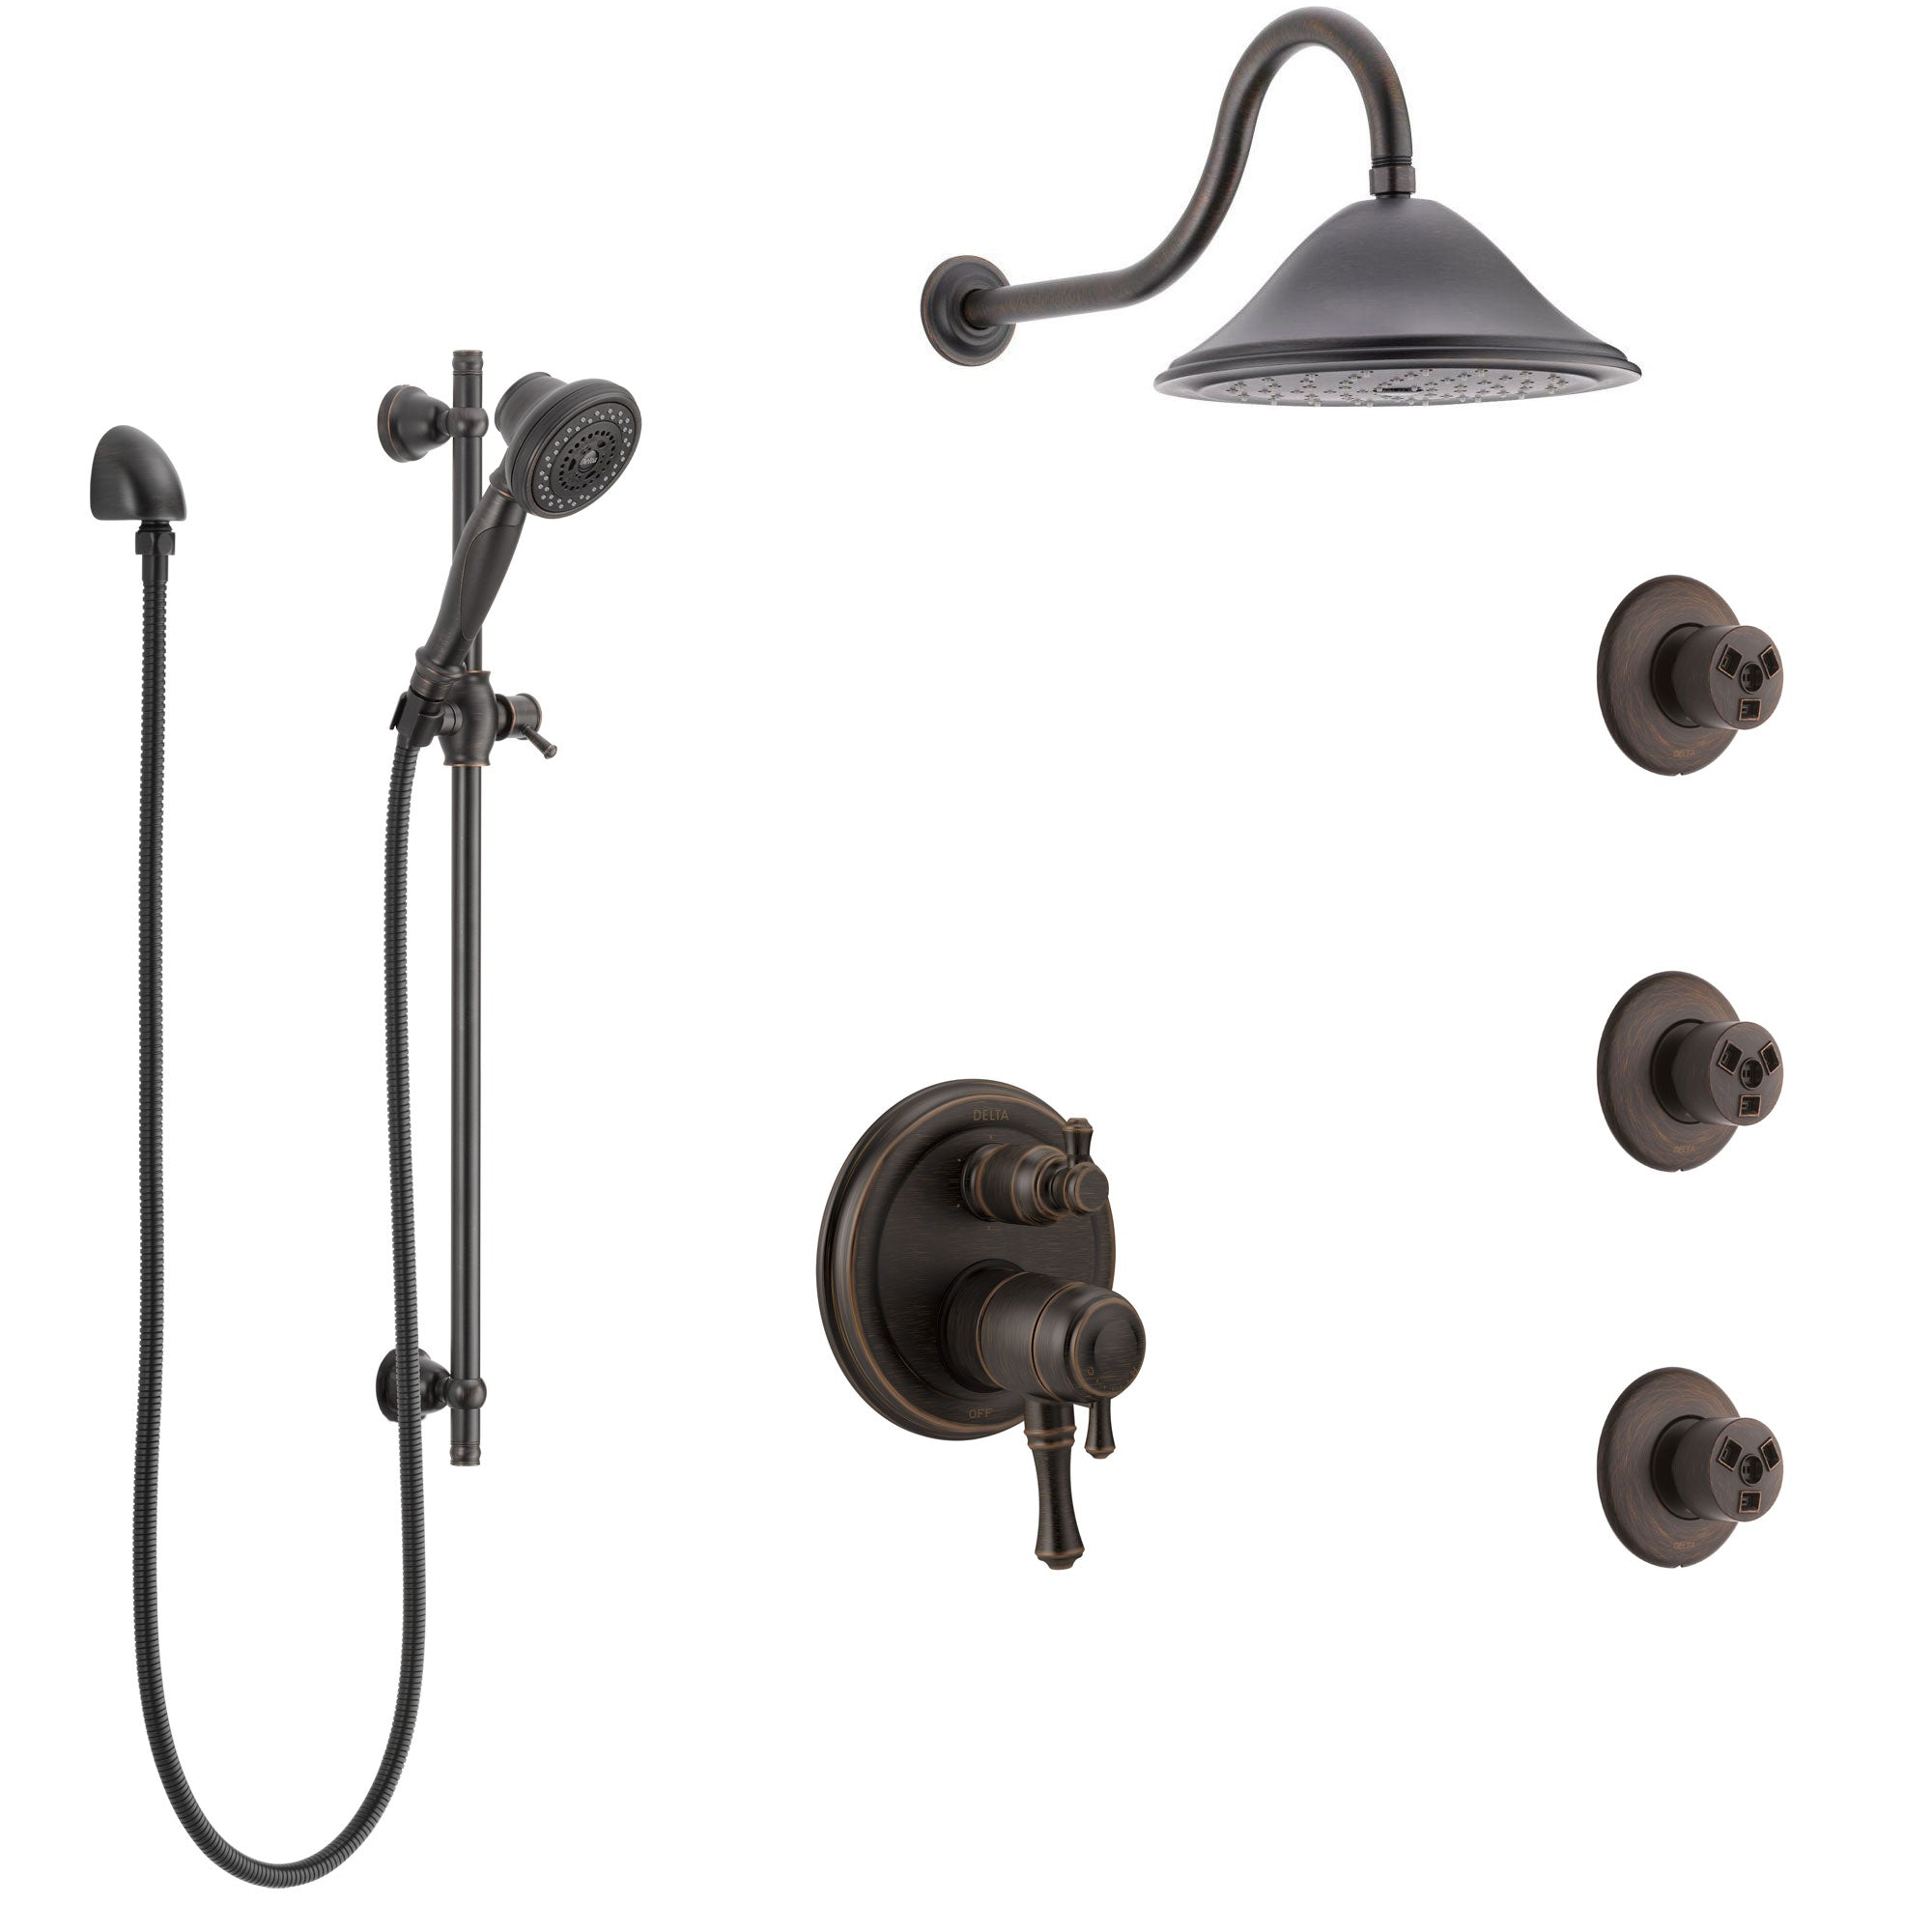 Delta Cassidy Venetian Bronze Shower System with Dual Control Handle, Integrated Diverter, Showerhead, 3 Body Sprays, and Hand Shower SS27997RB1